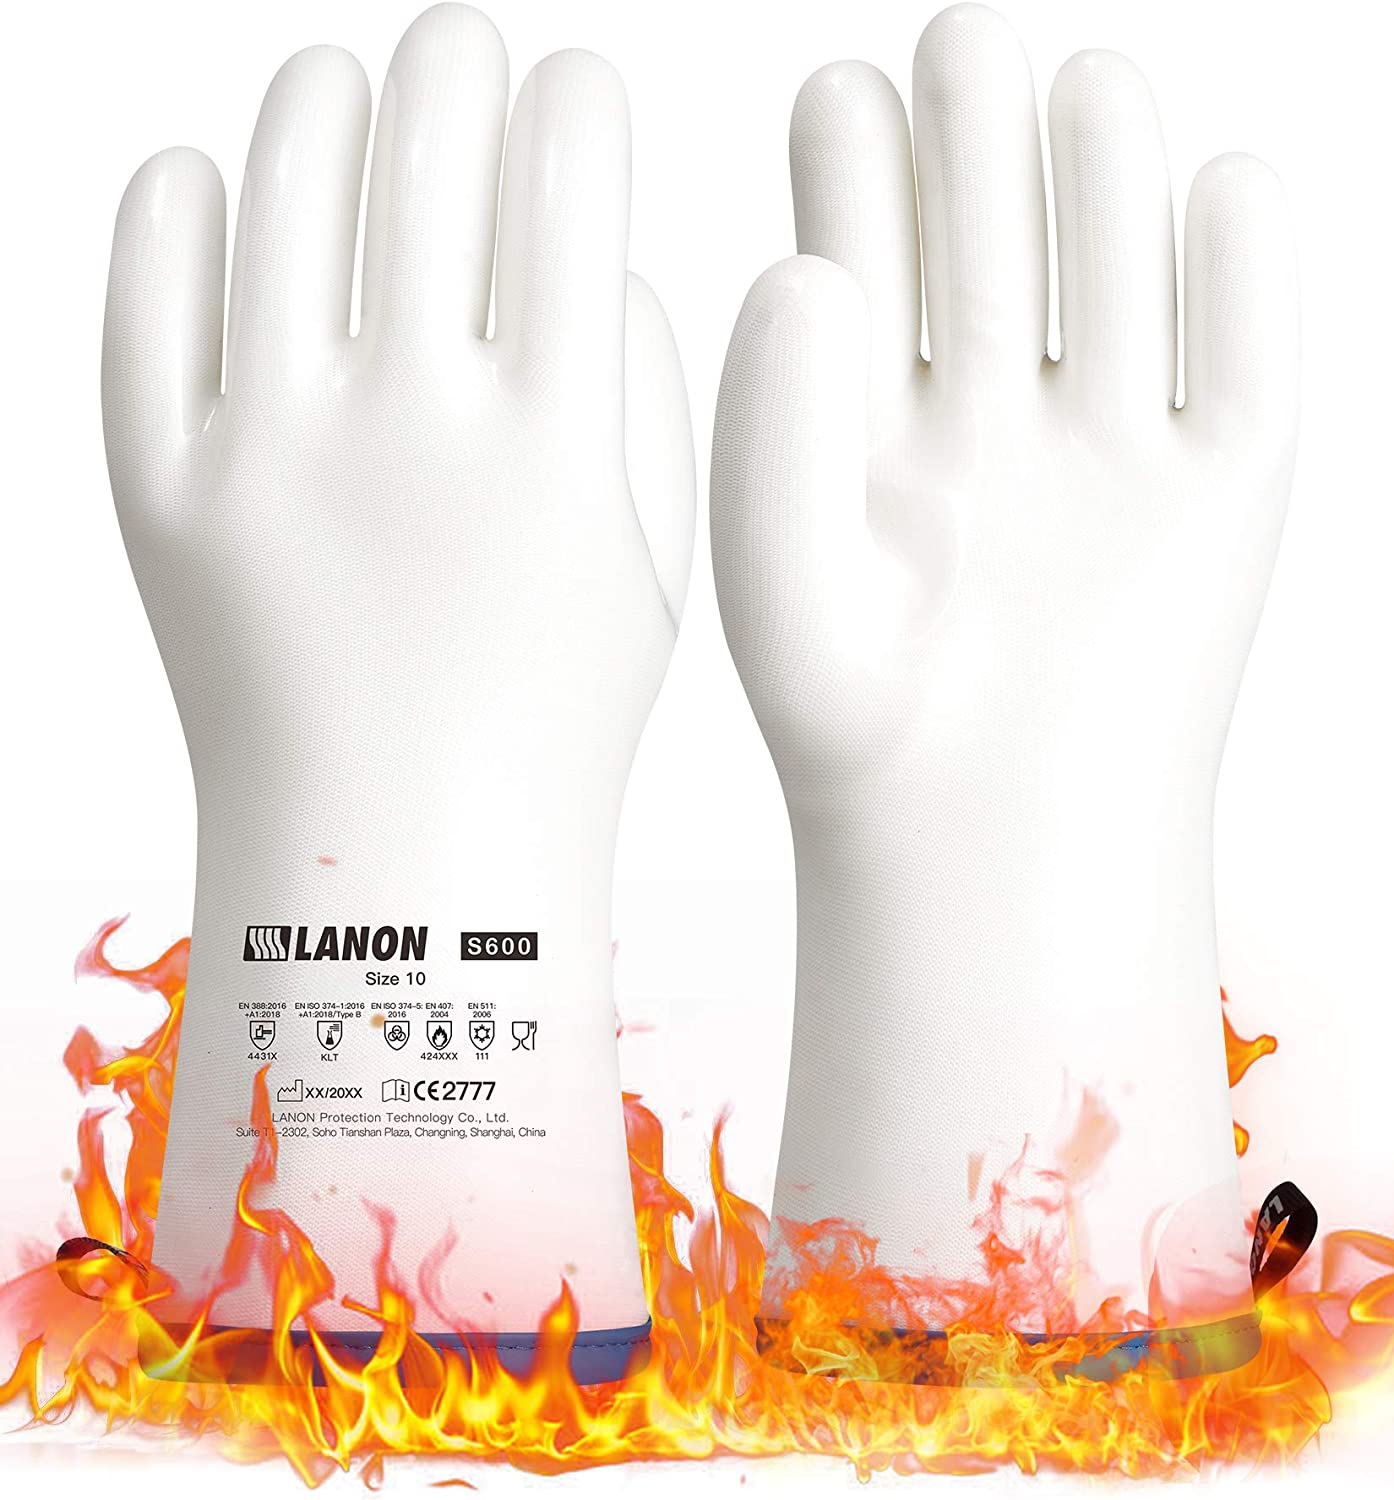 LANON Liquid Silicone Heat Resistant Gloves with CoralAir Liner for Oven Barbecue Grill Cooking Baking Kitchen, Food Grade, Waterproof, White, Size 10